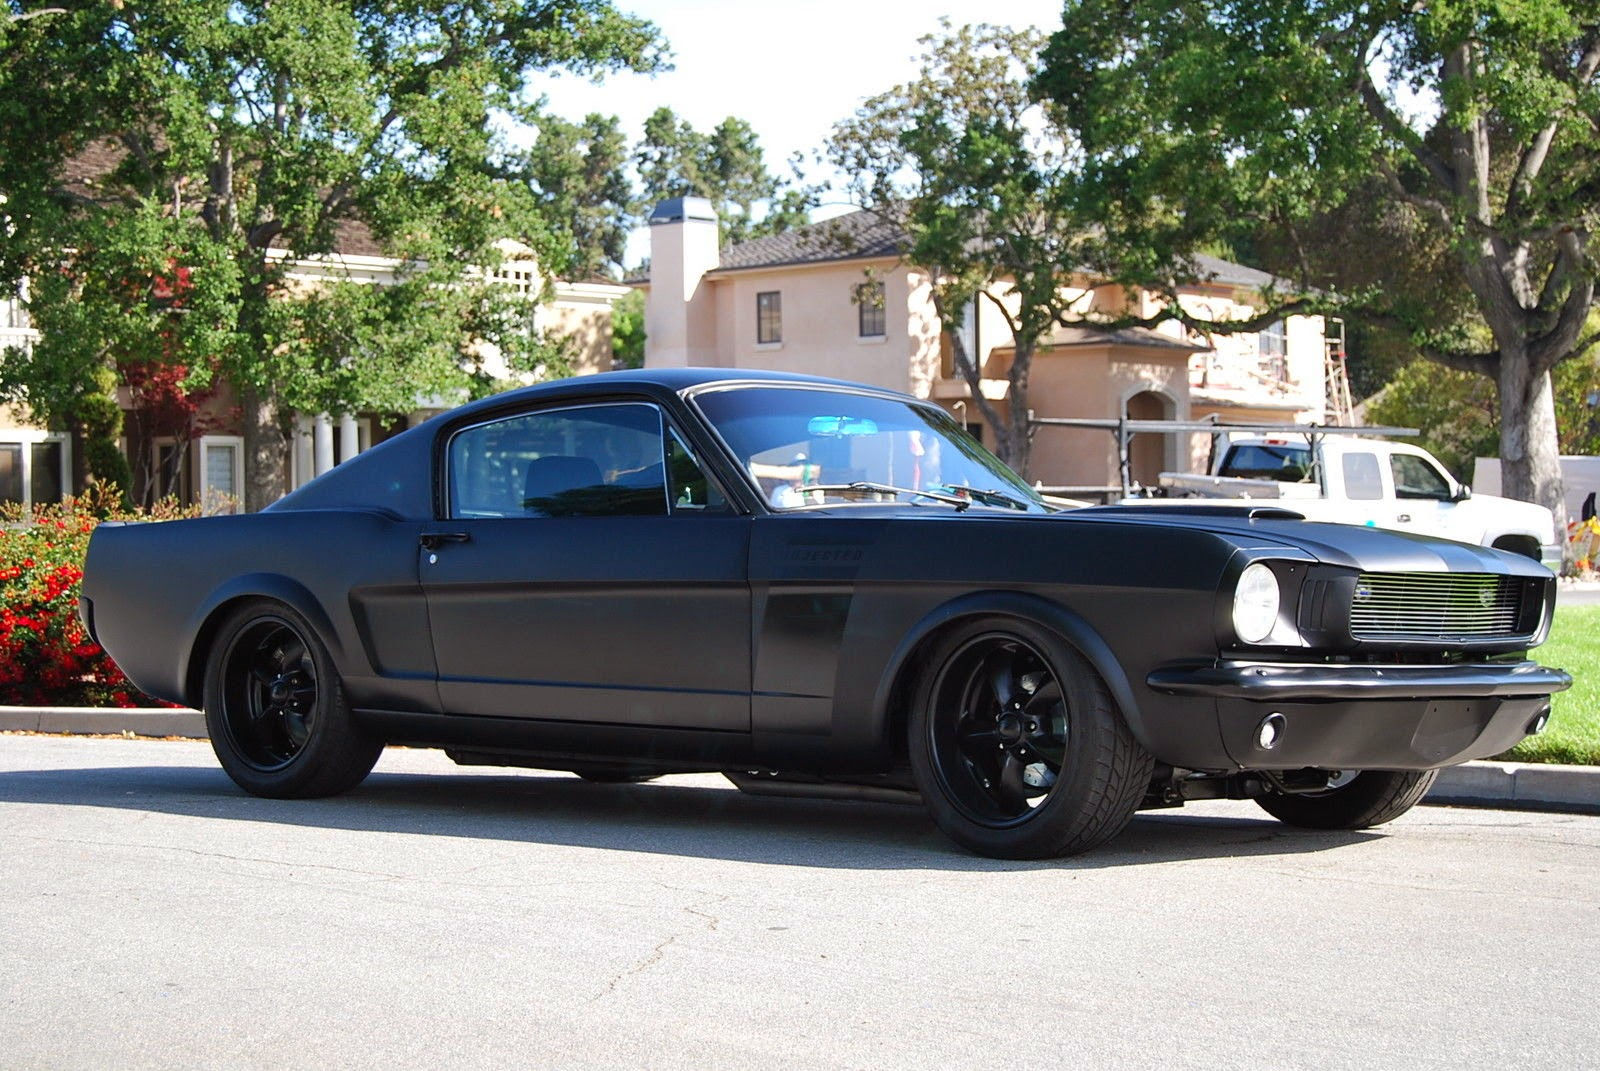 for sale 1965 ford mustang fastback for sale american muscle cars. Black Bedroom Furniture Sets. Home Design Ideas